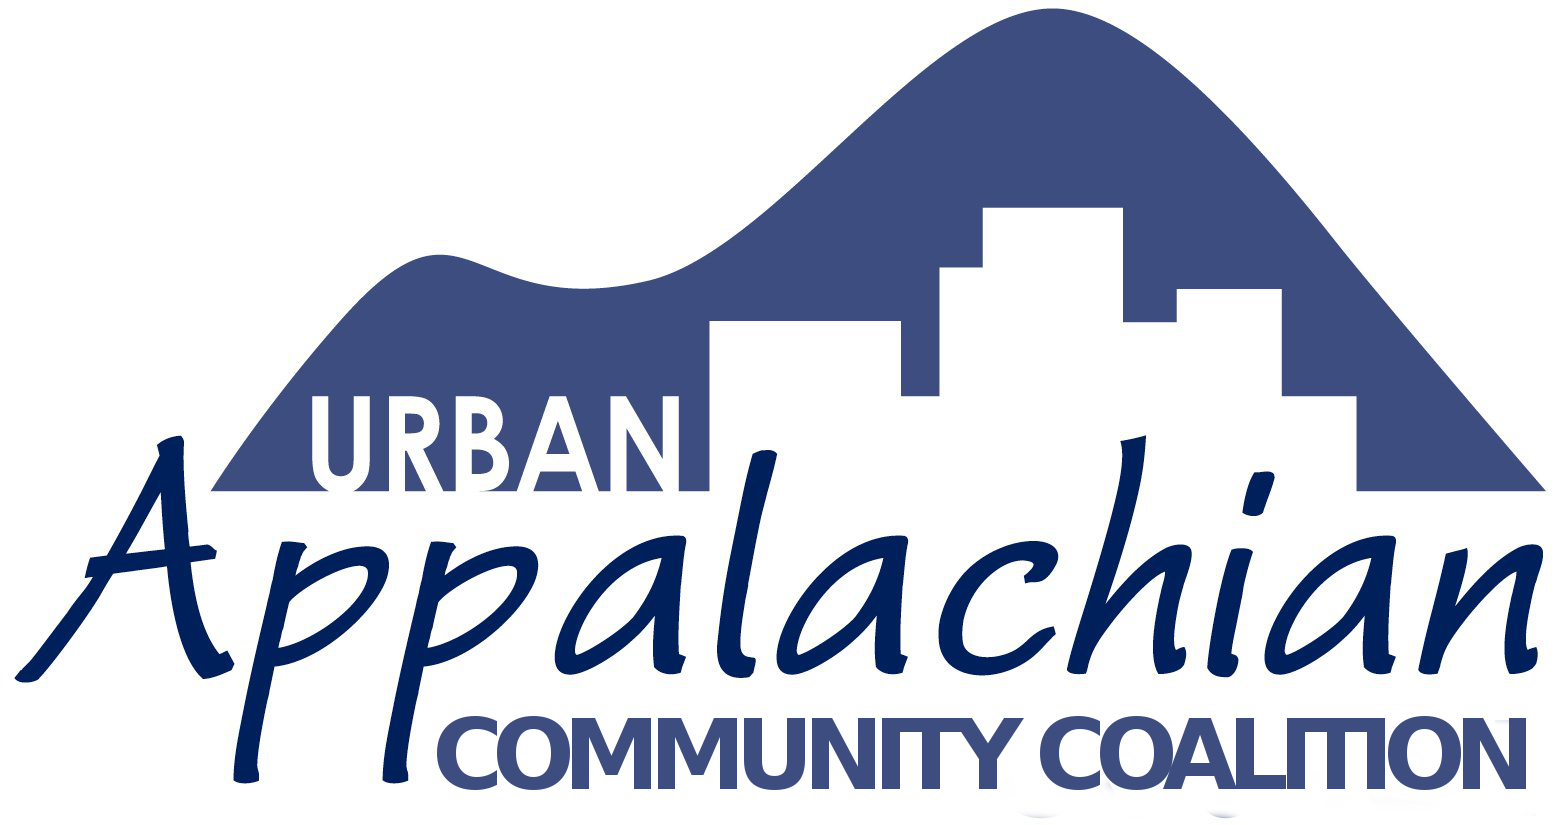 Urban Appalachian Community Coalition